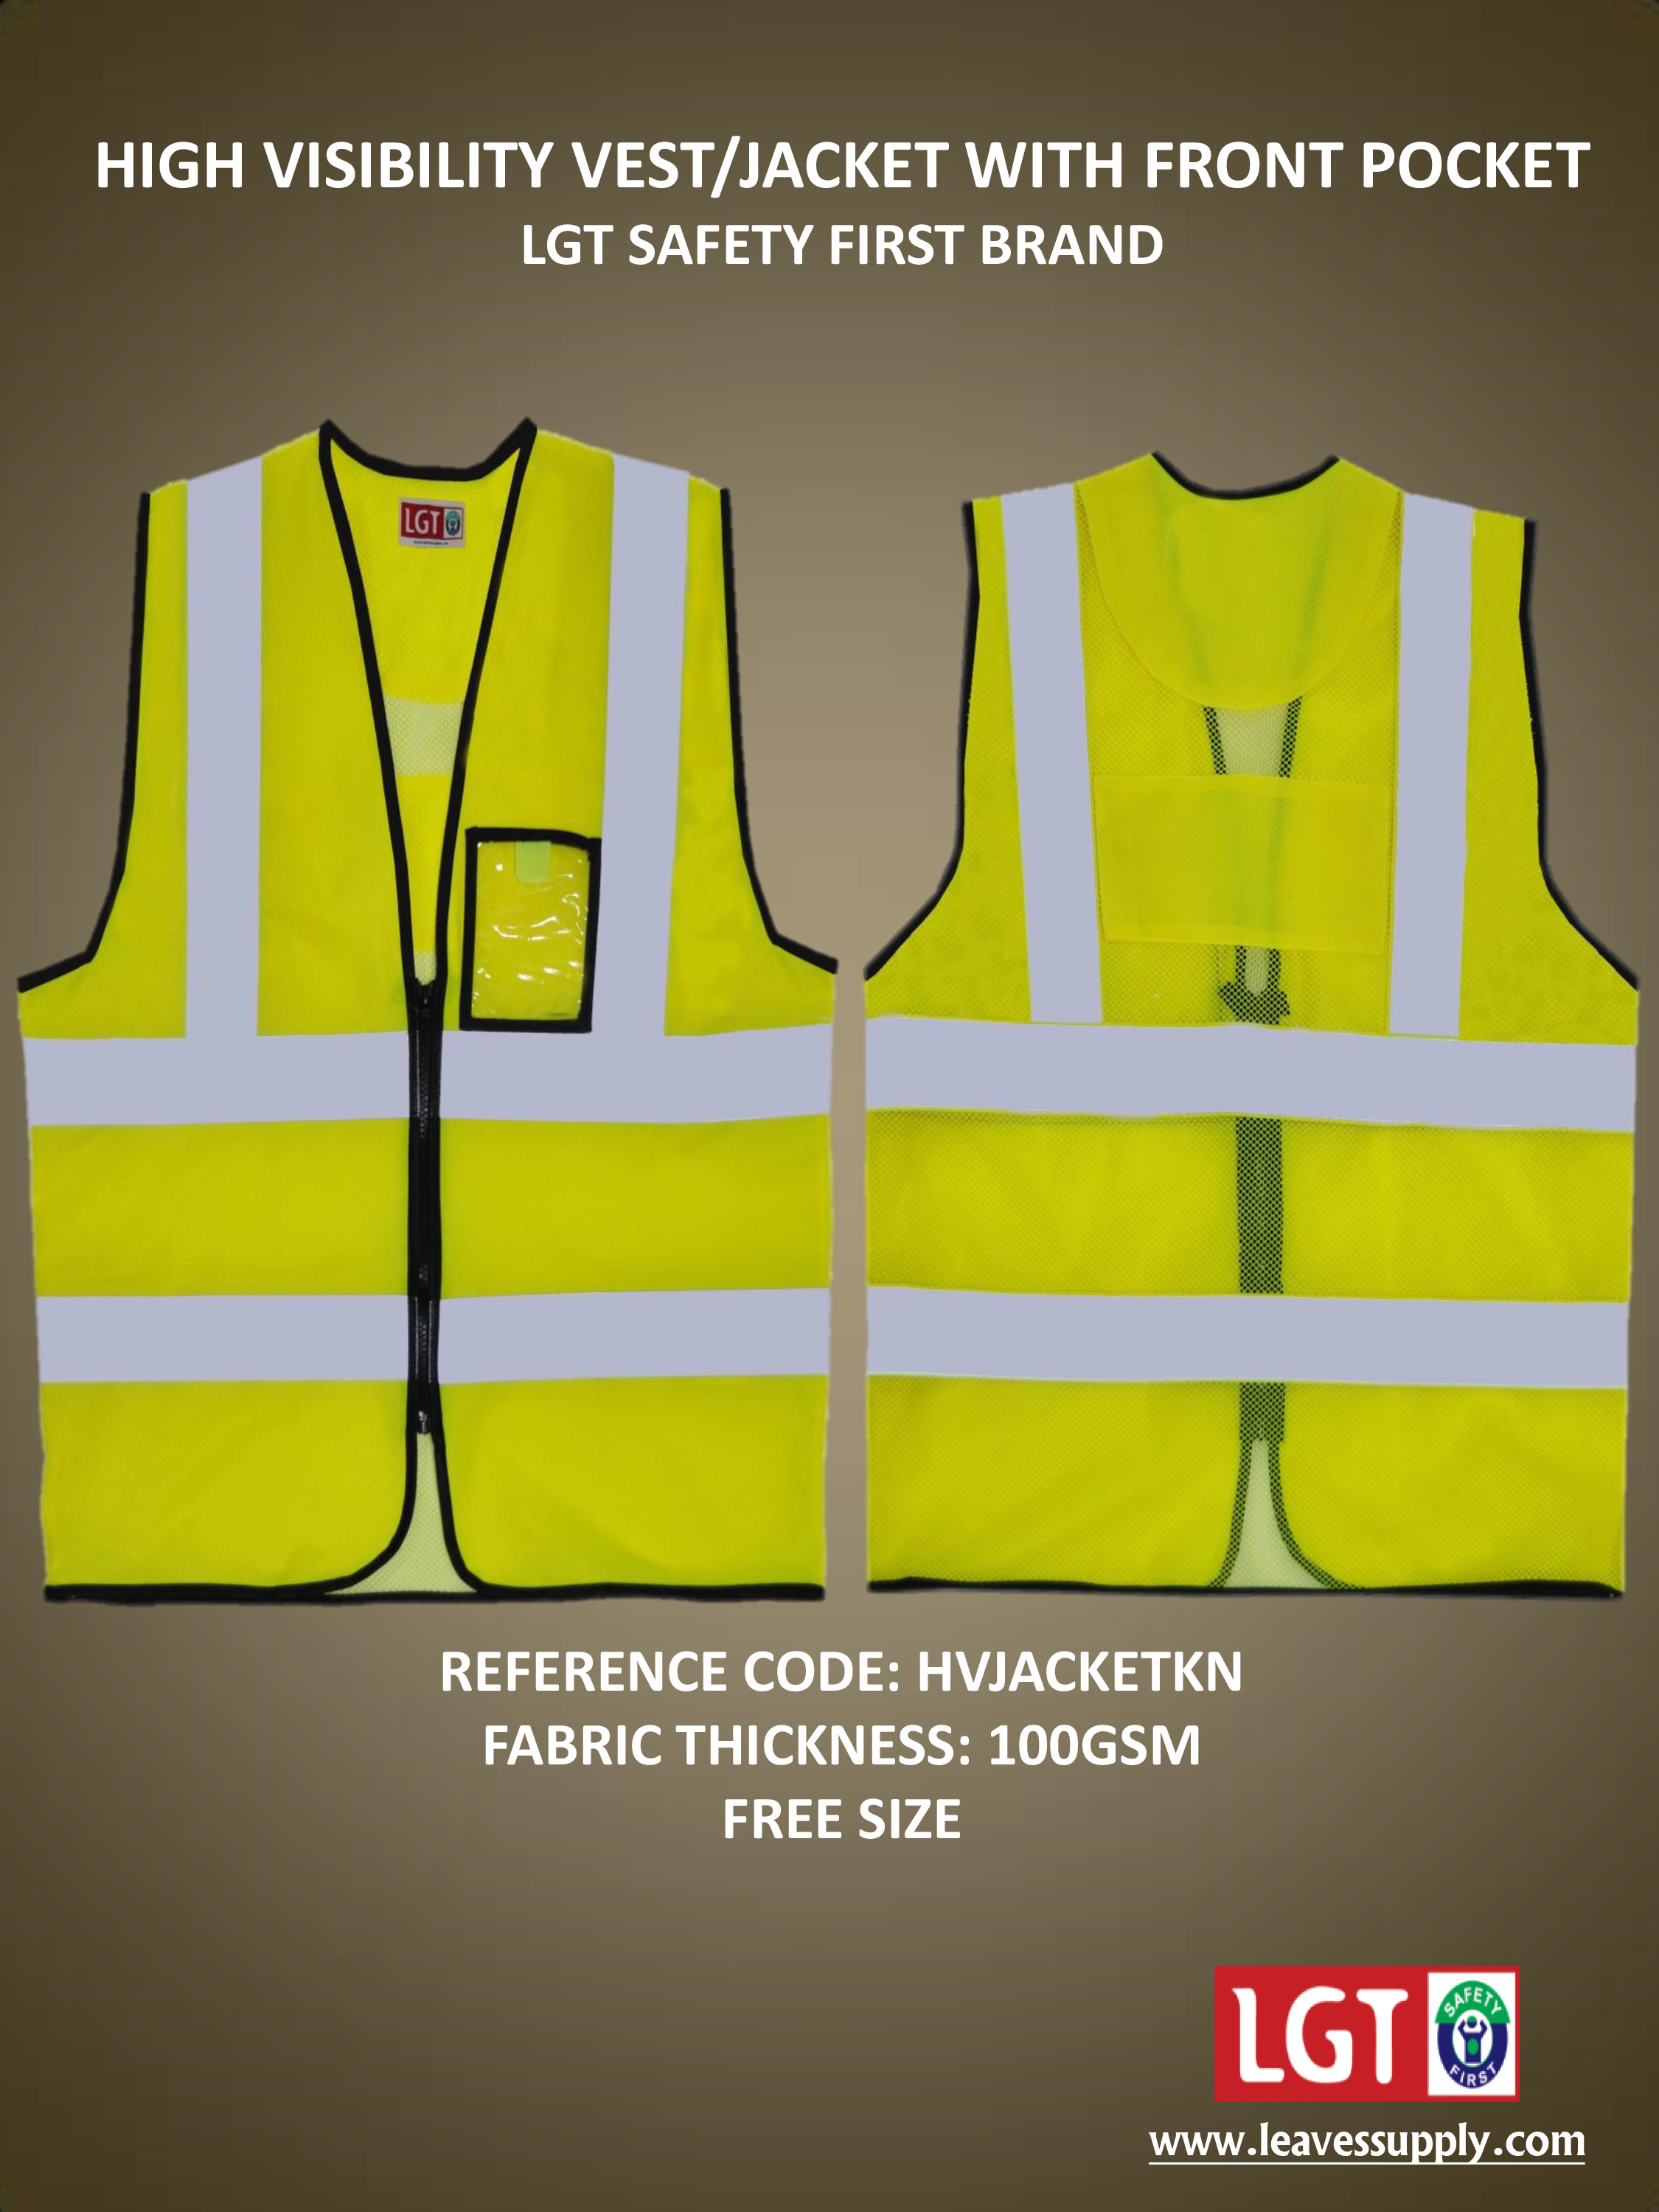 Green Safety Jackets with Pocket